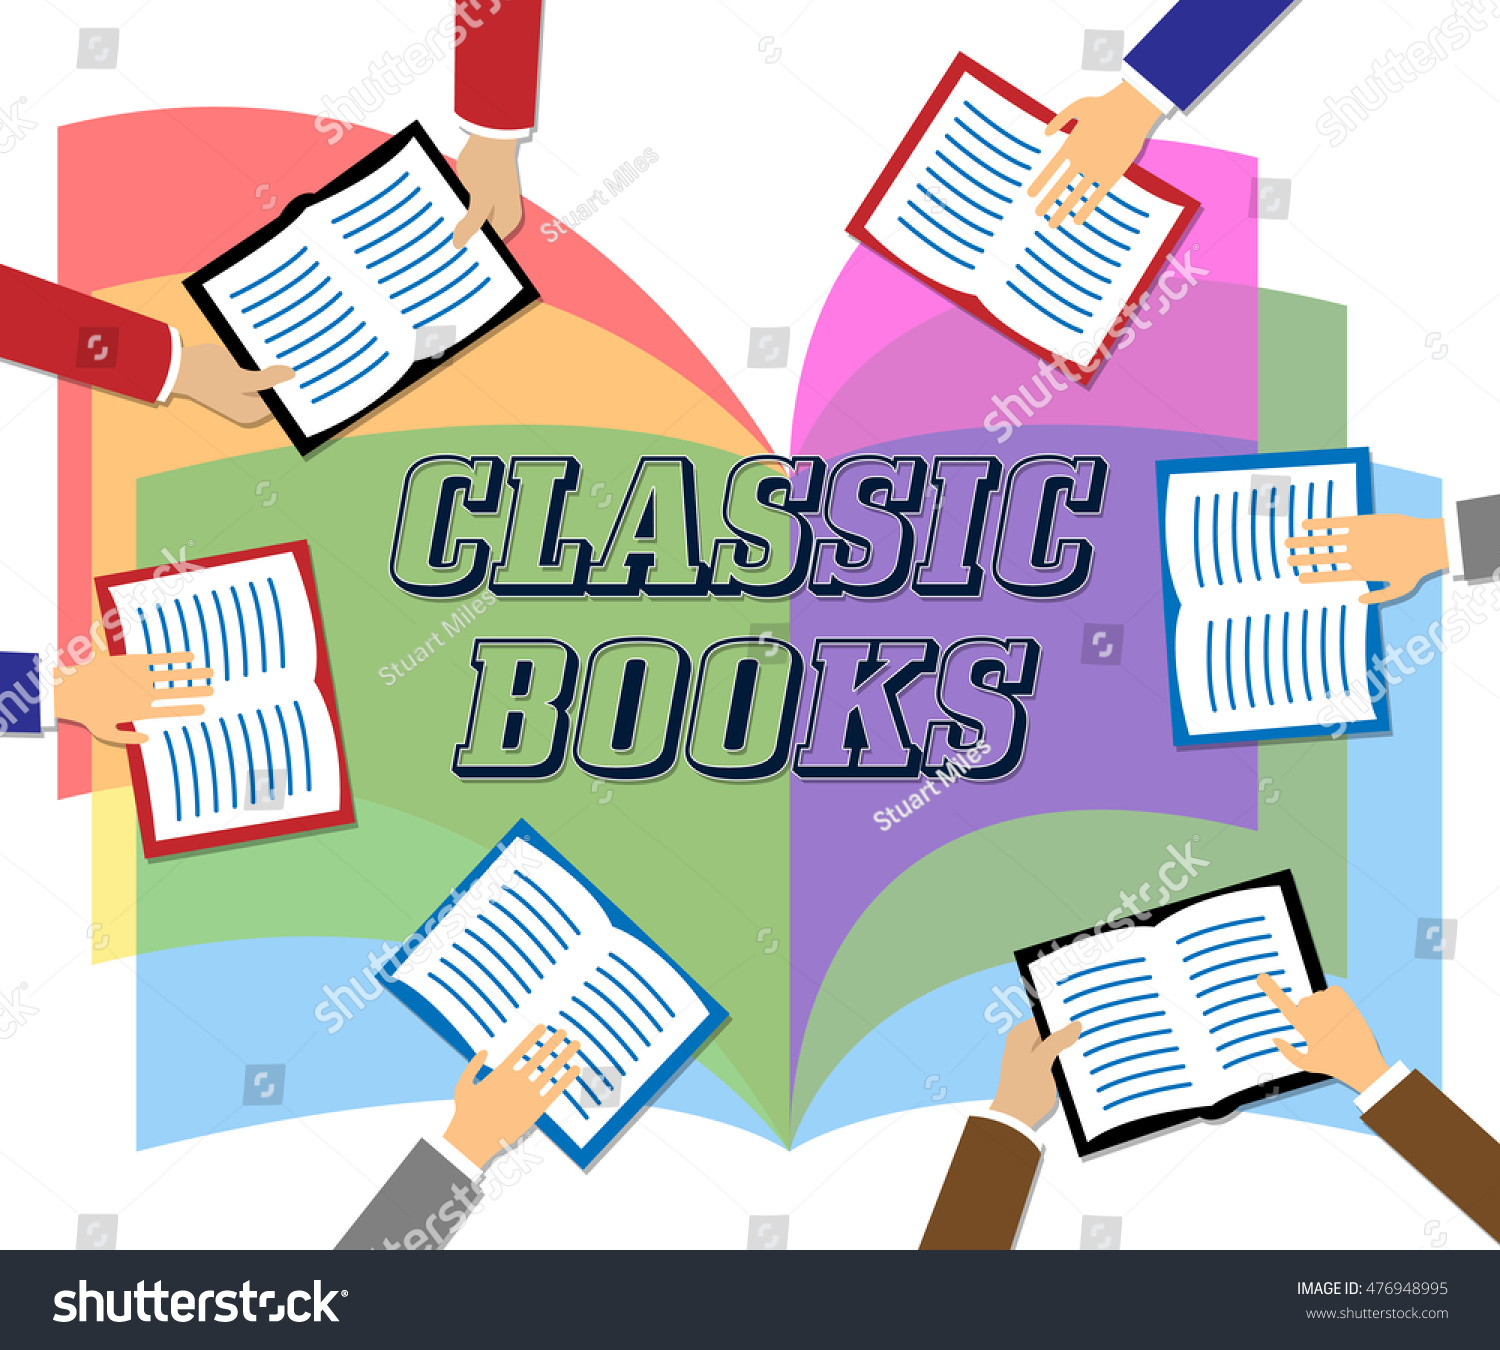 Classic Books Meaning Period Literature Fiction Stock Illustration